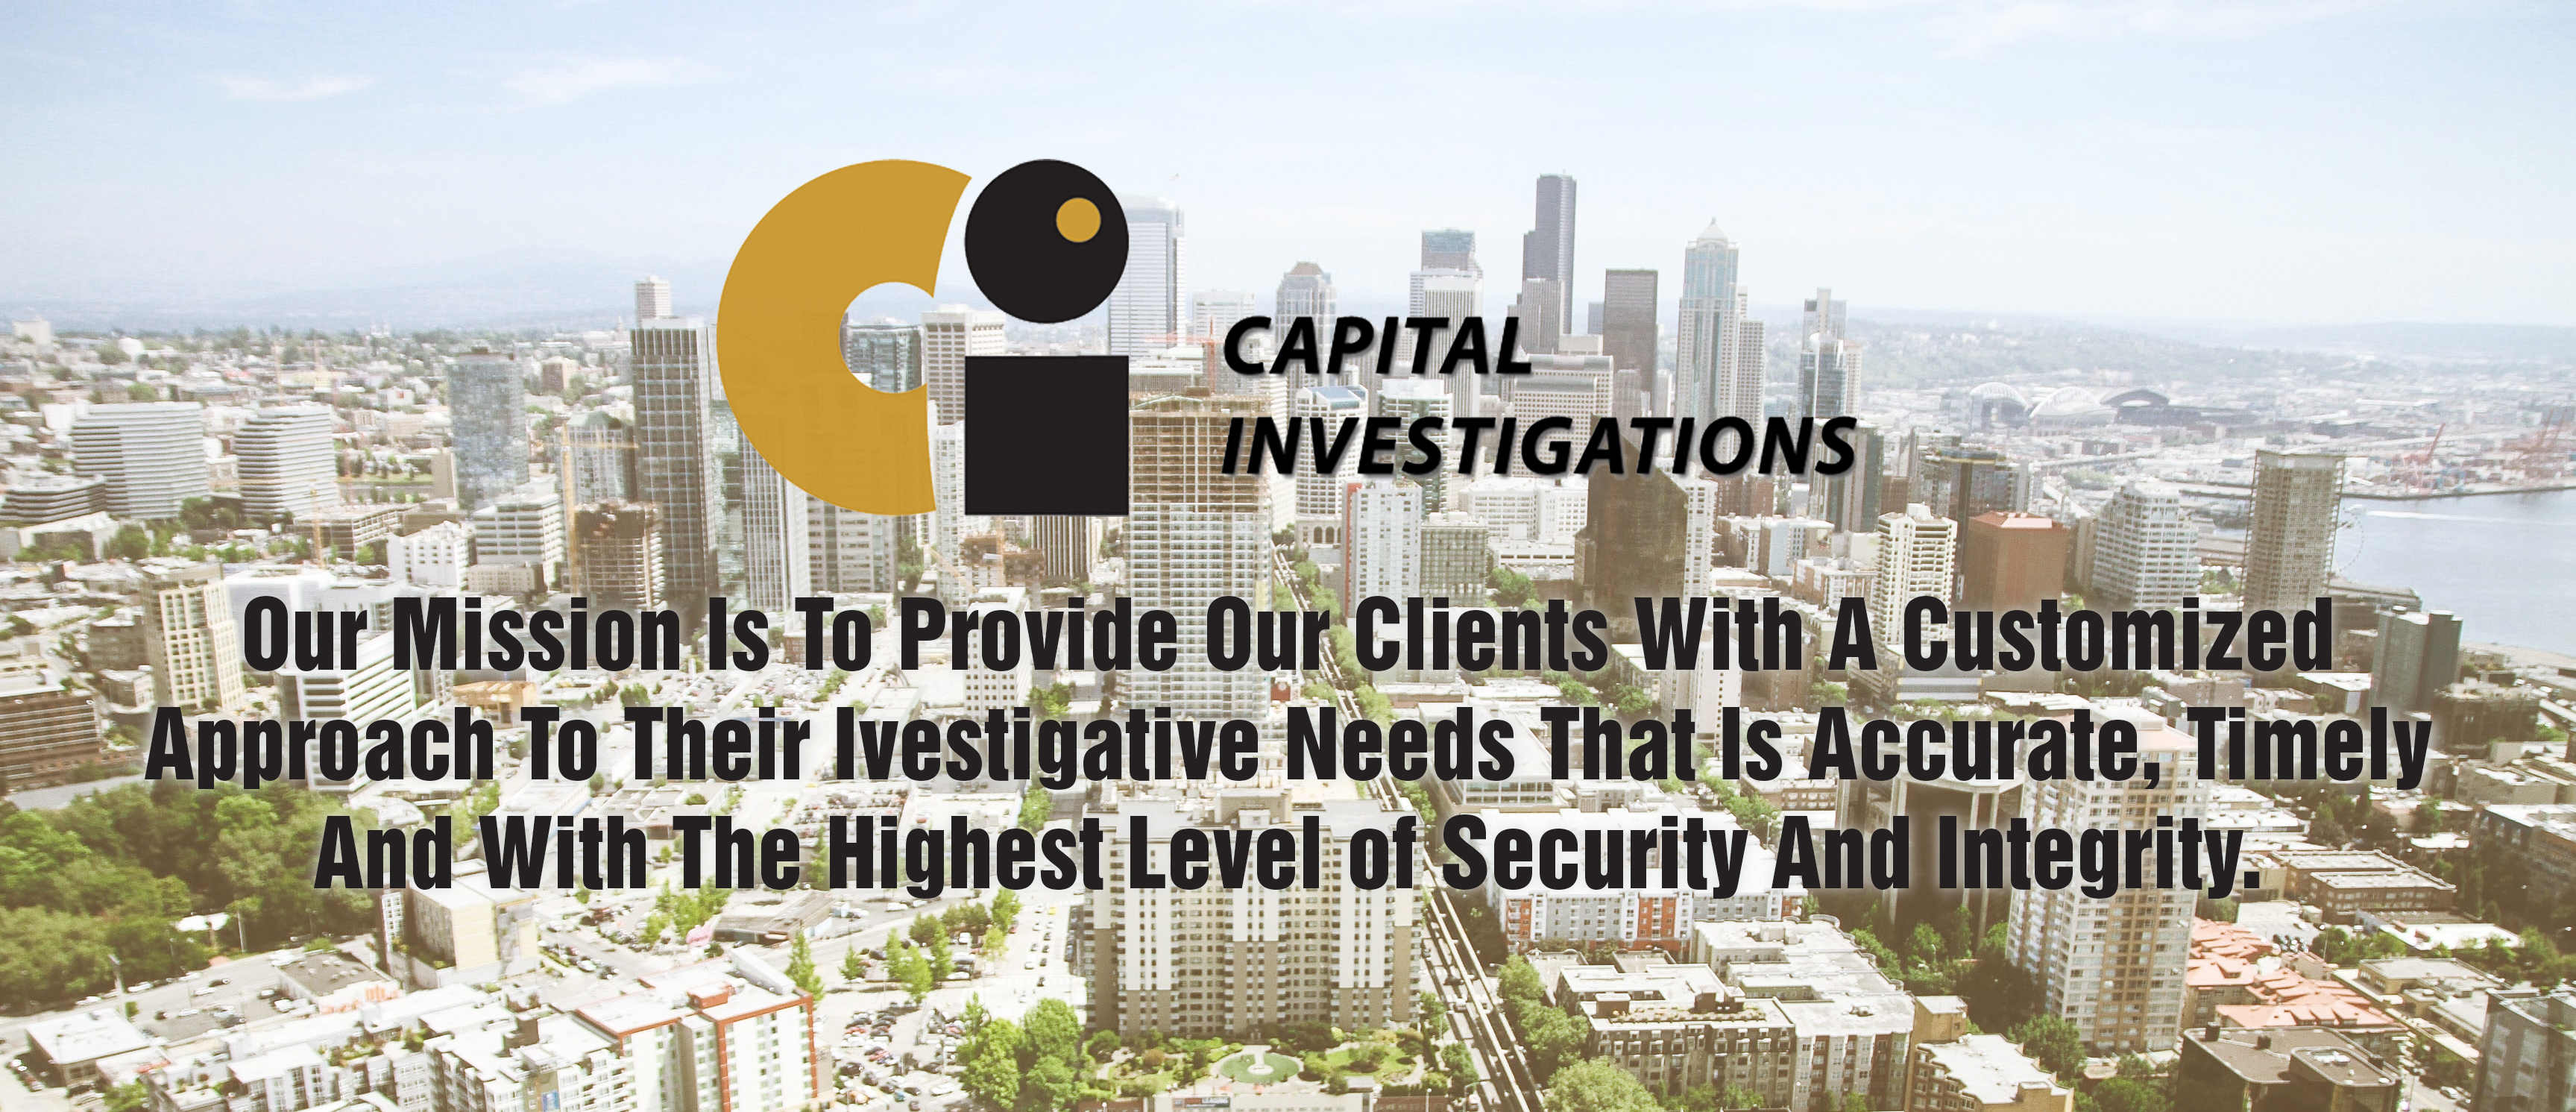 Capital Investigations Banner